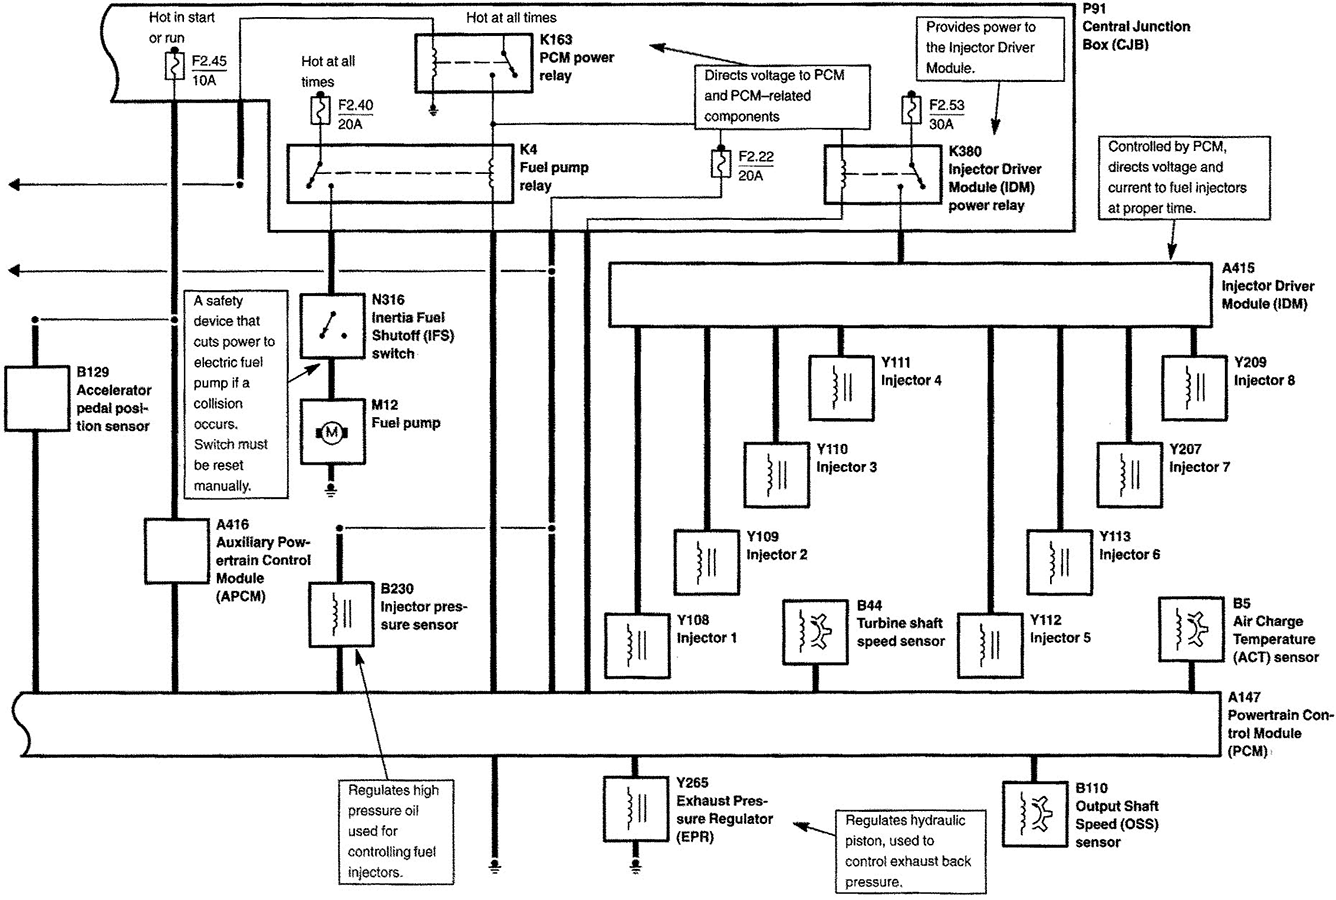 2001 F250 Super Duty Wiring Diagram 1972 Cougar Wiring Diagram Pump 2020ok Jiwa Jeanjaures37 Fr